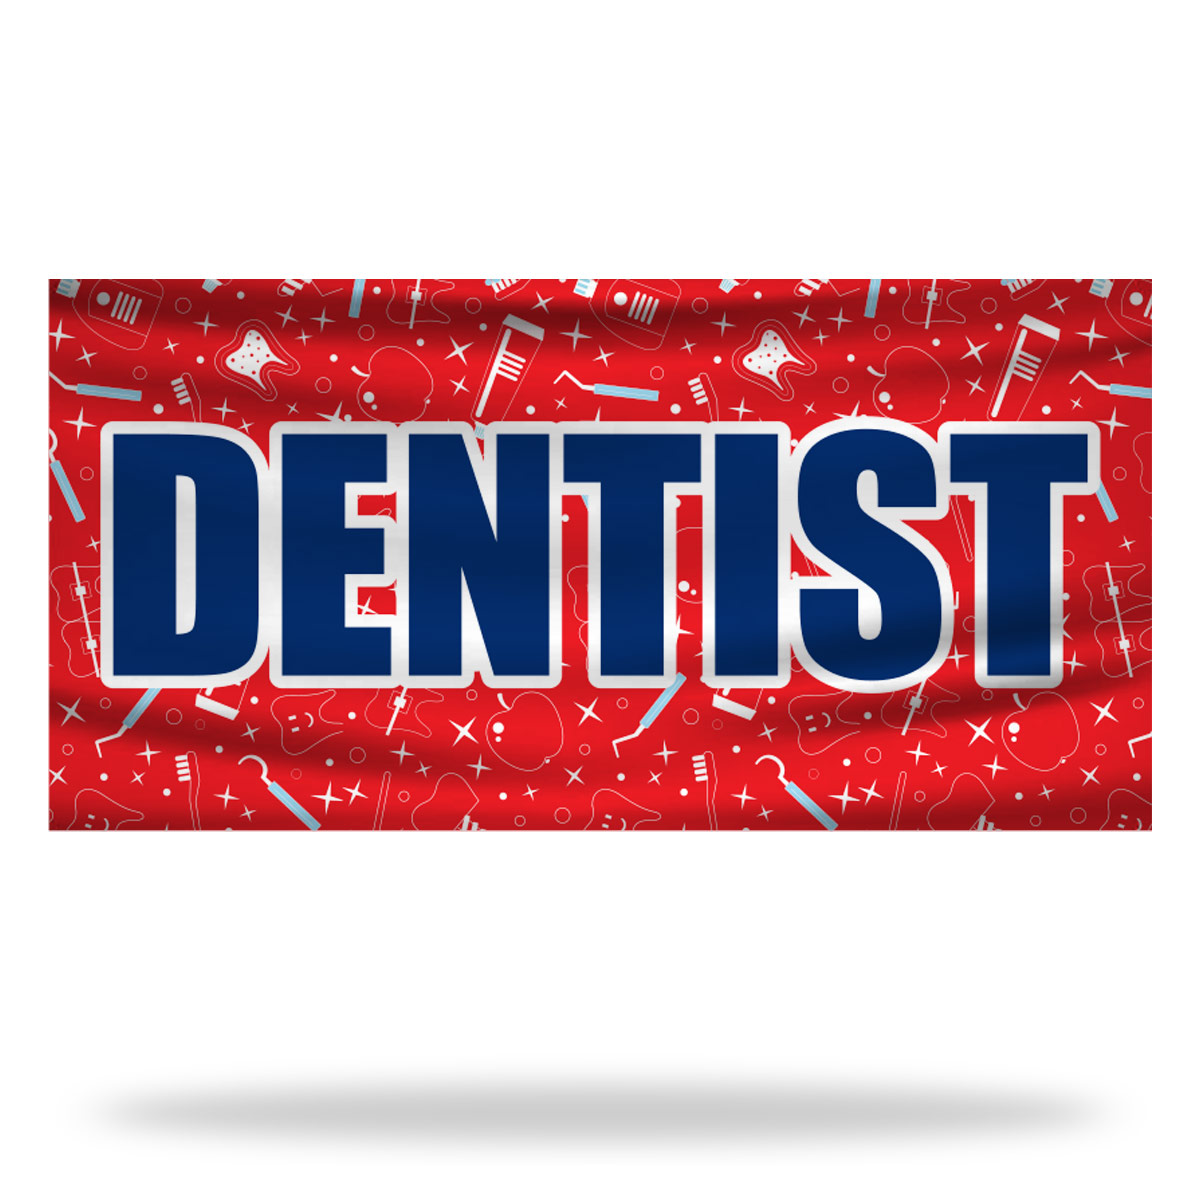 Dentist Flags & Banners Design 04